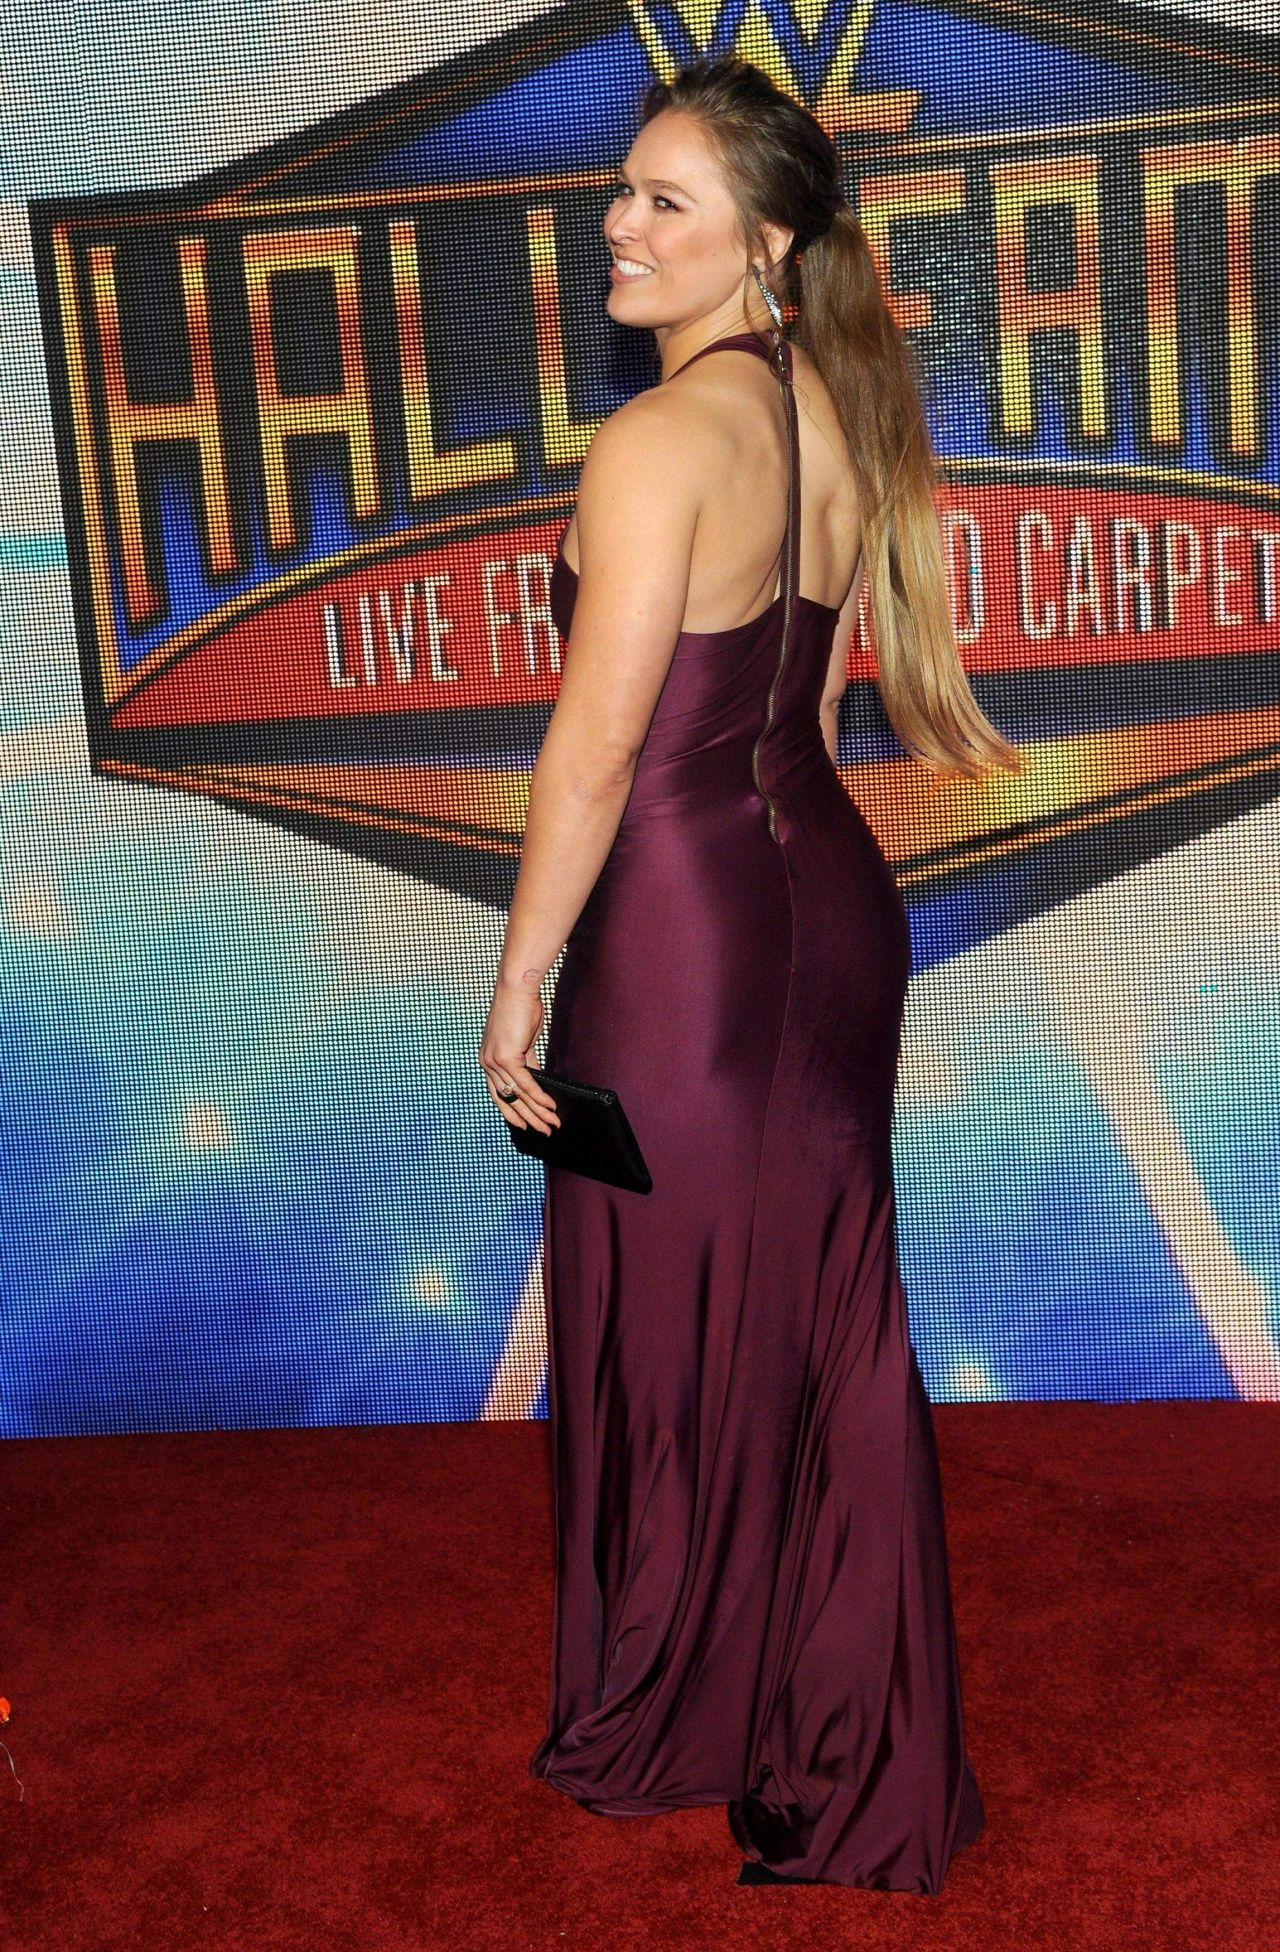 Ronda Rousey Wwe S 2018 Hall Of Fame Induction Ceremony